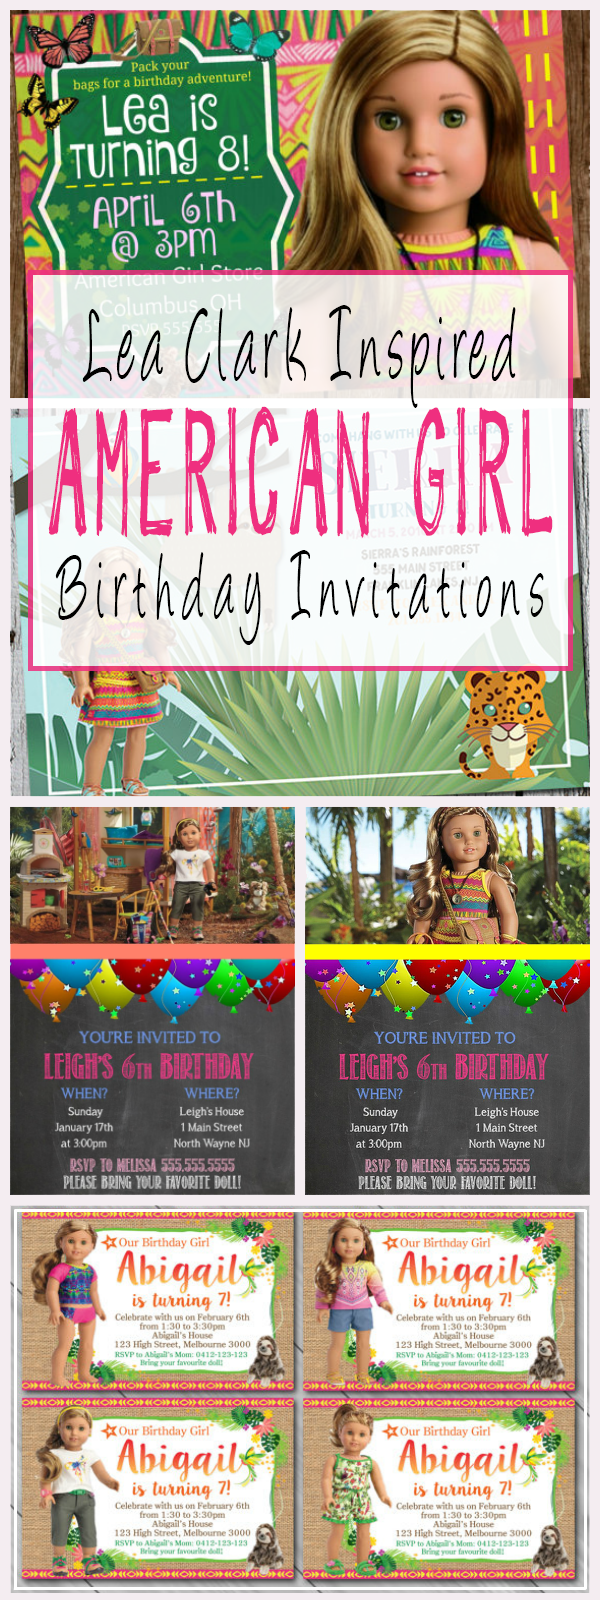 Lea Clark inspired 2016 American Girl birthday party invitations and party printables perfect for a tropical or jungle themed party!